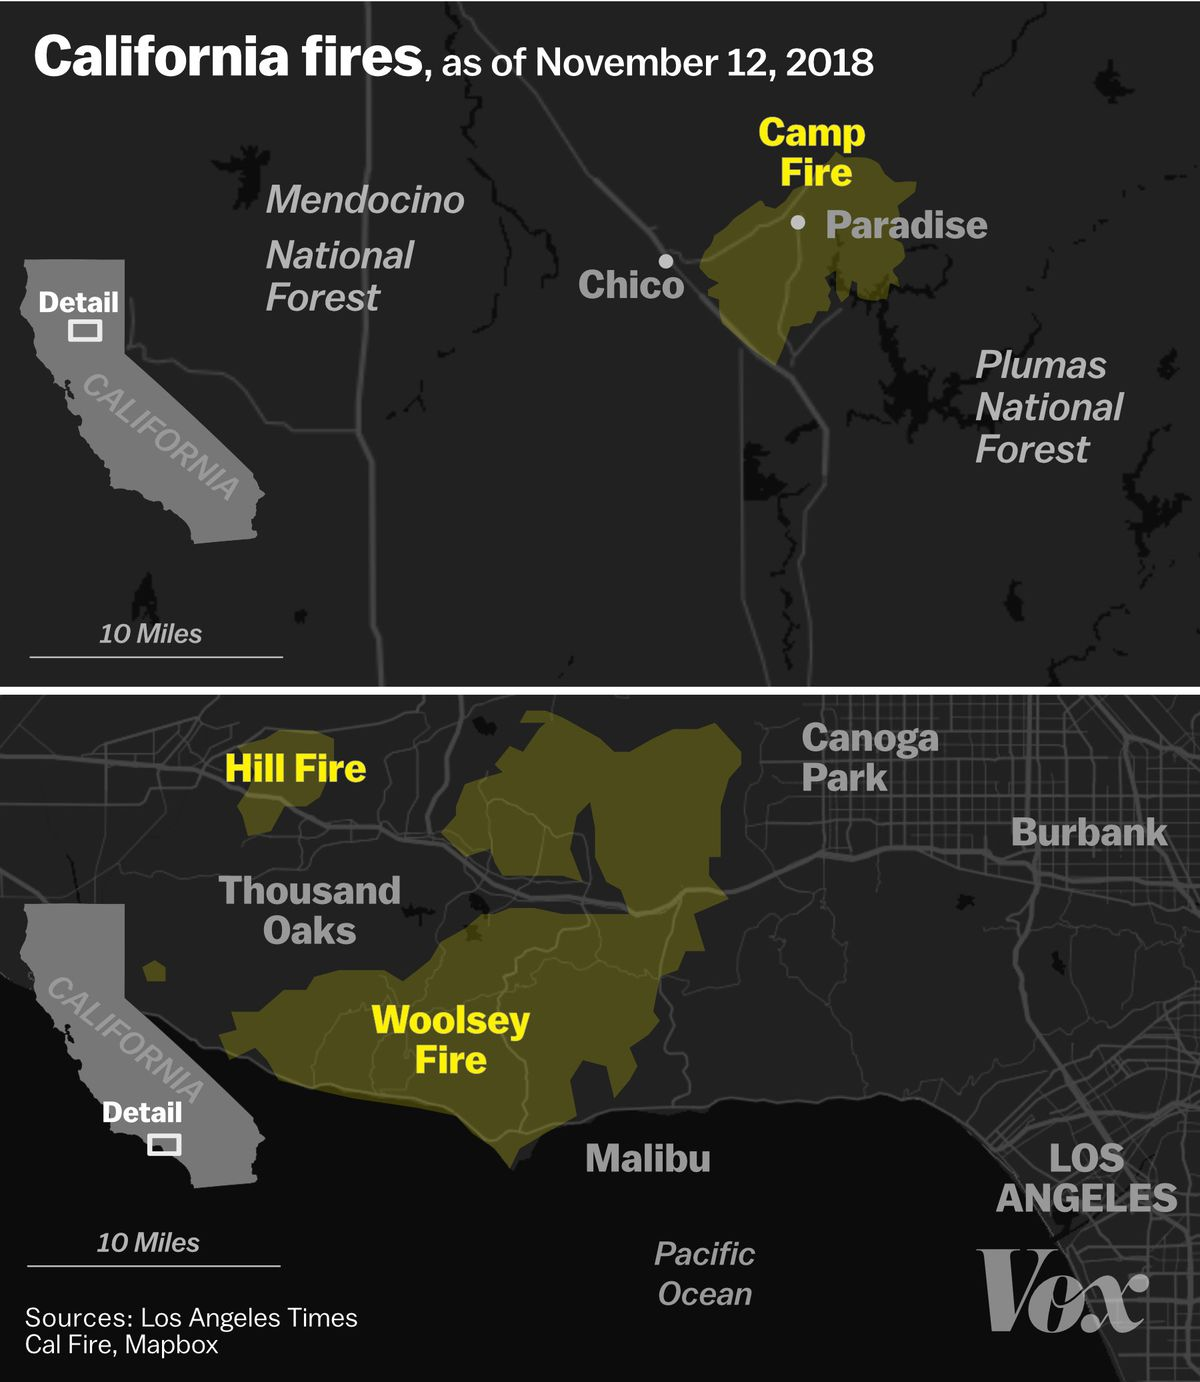 Northern California Fire Map 2018.California Wildfires 2018 Camp And Woolsey Fires Are Rapidly